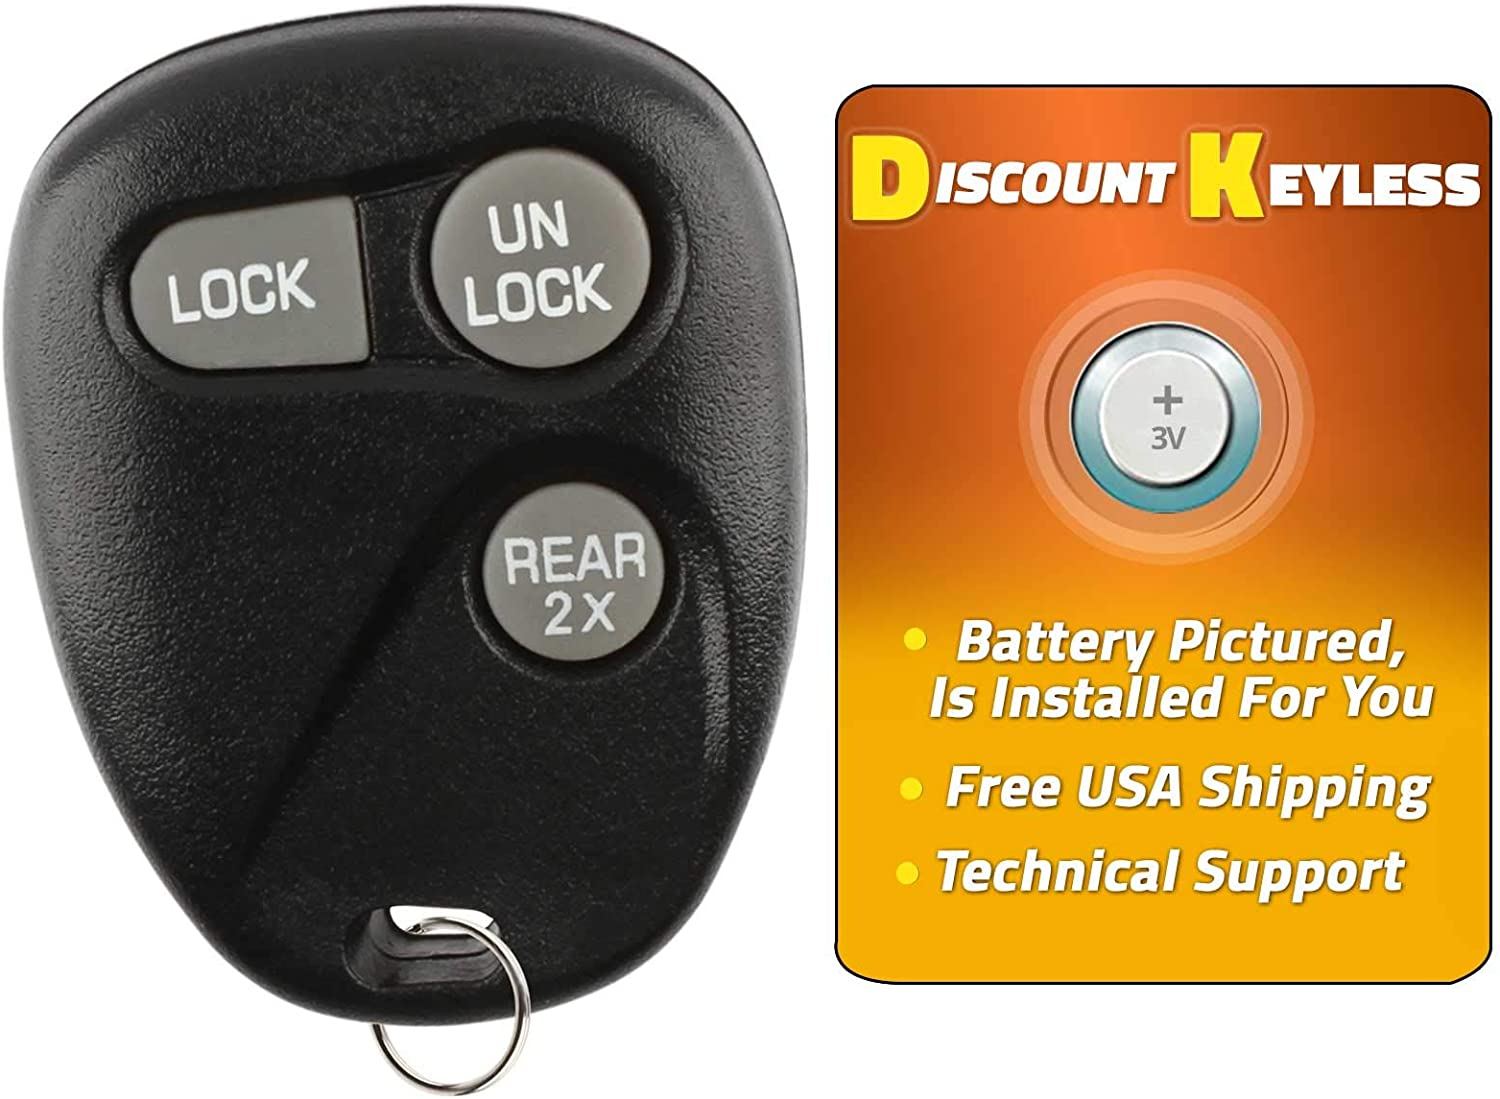 Discount Keyless Replacement Key Fob Car Remote Compatible with ABO1502T 16245105 LYSB01HQK0I6C-ELECTRNCS 16245100-29